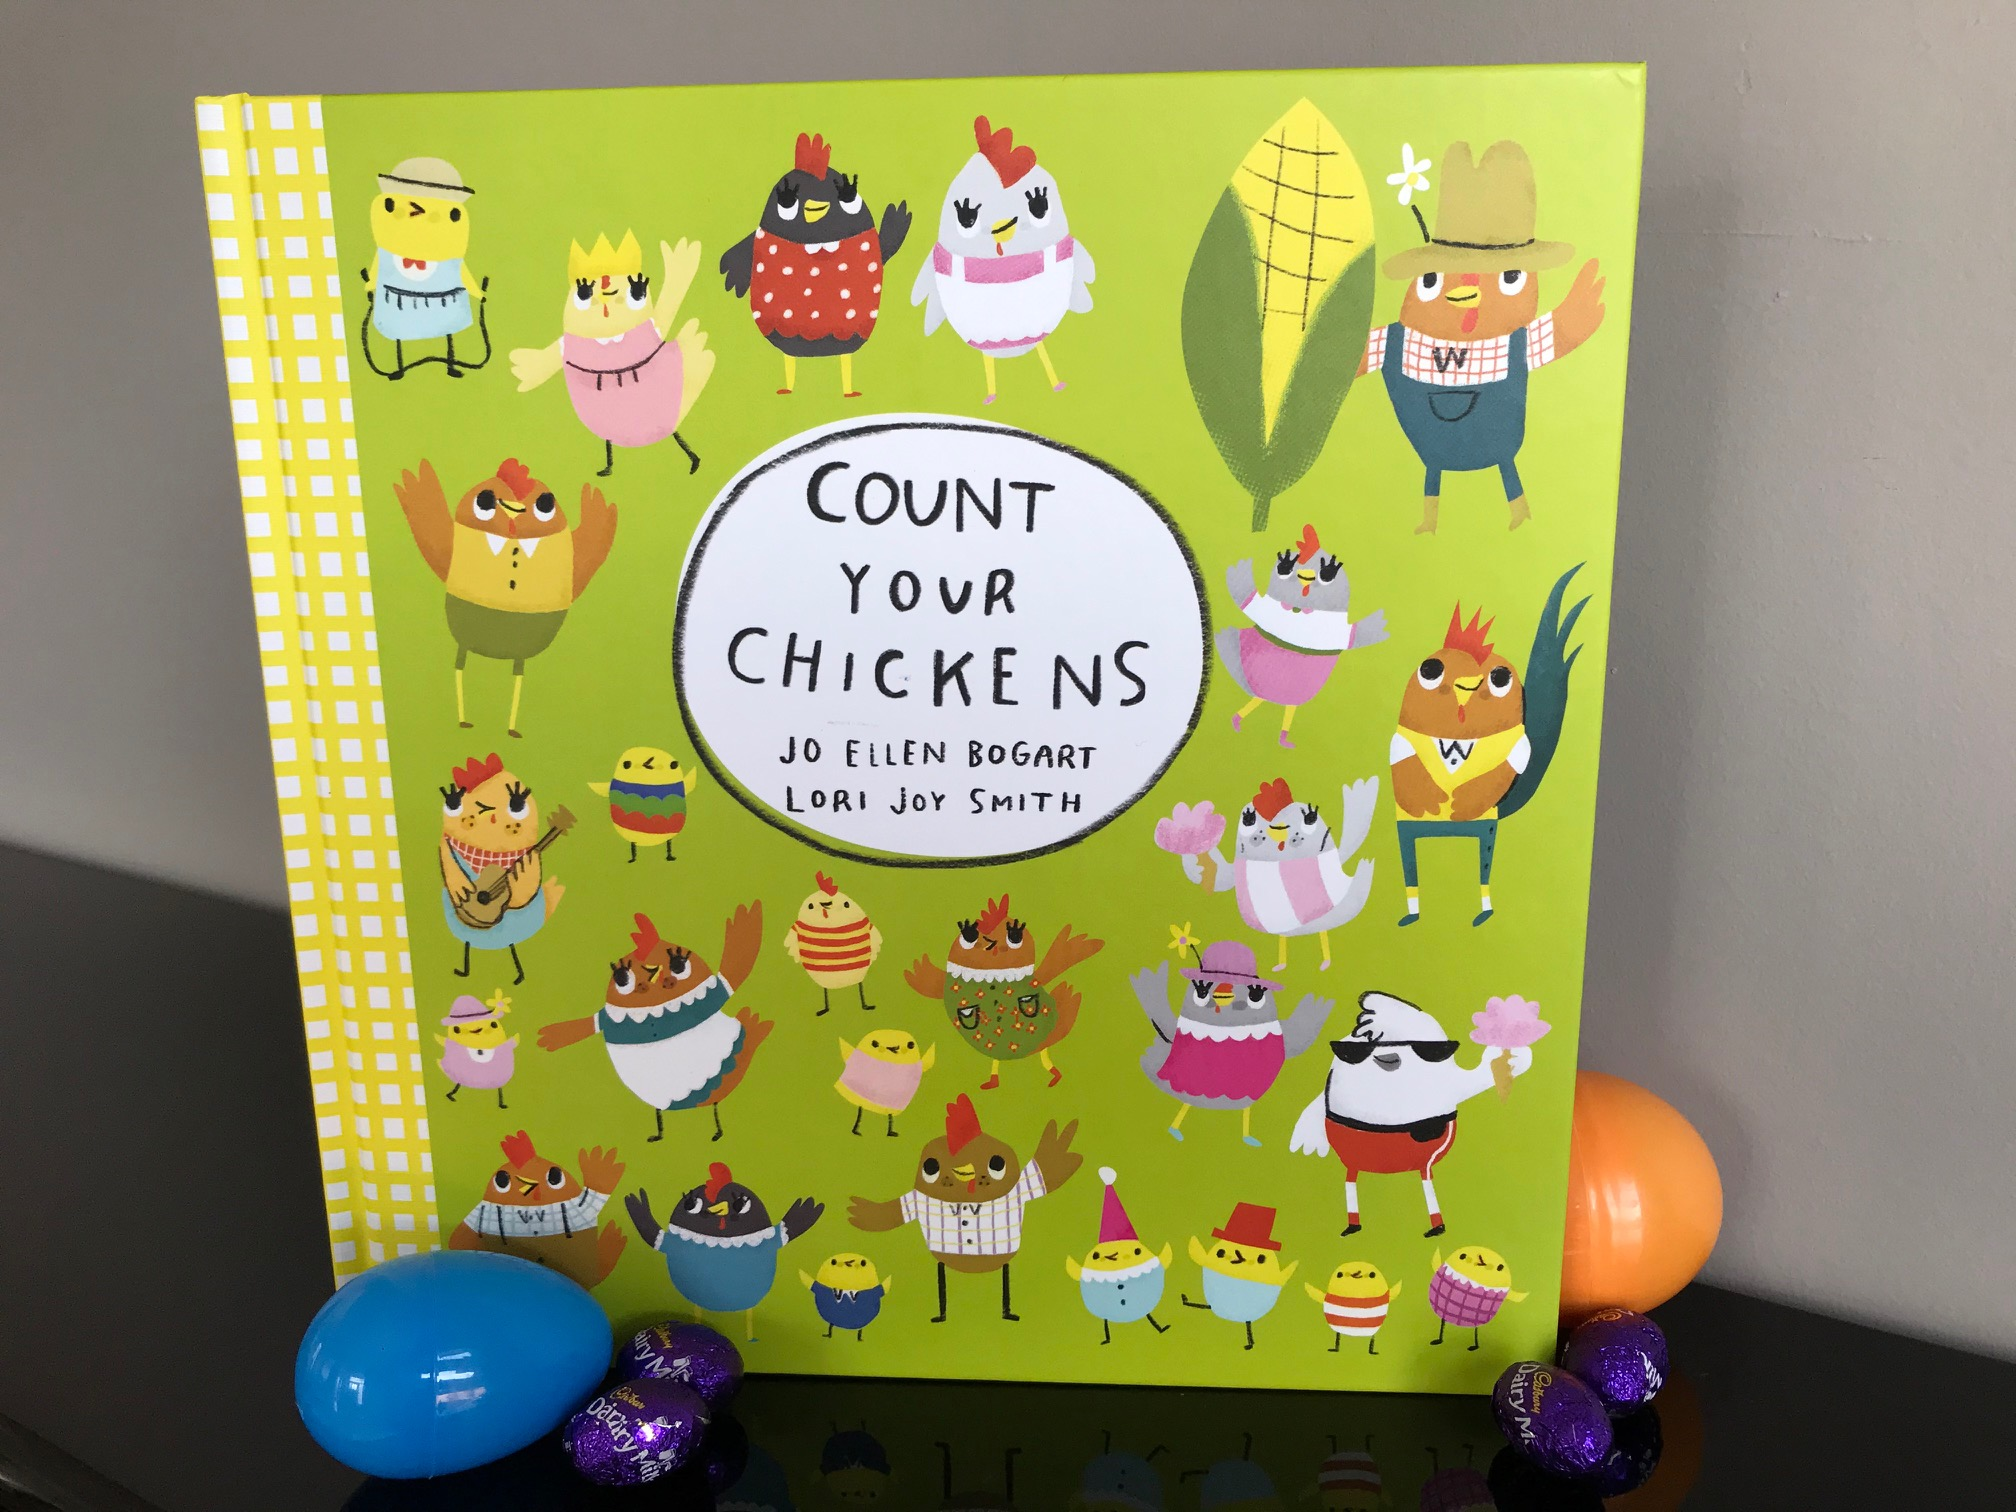 cover image of Count Your Chickens by Jo Ellen Bogart